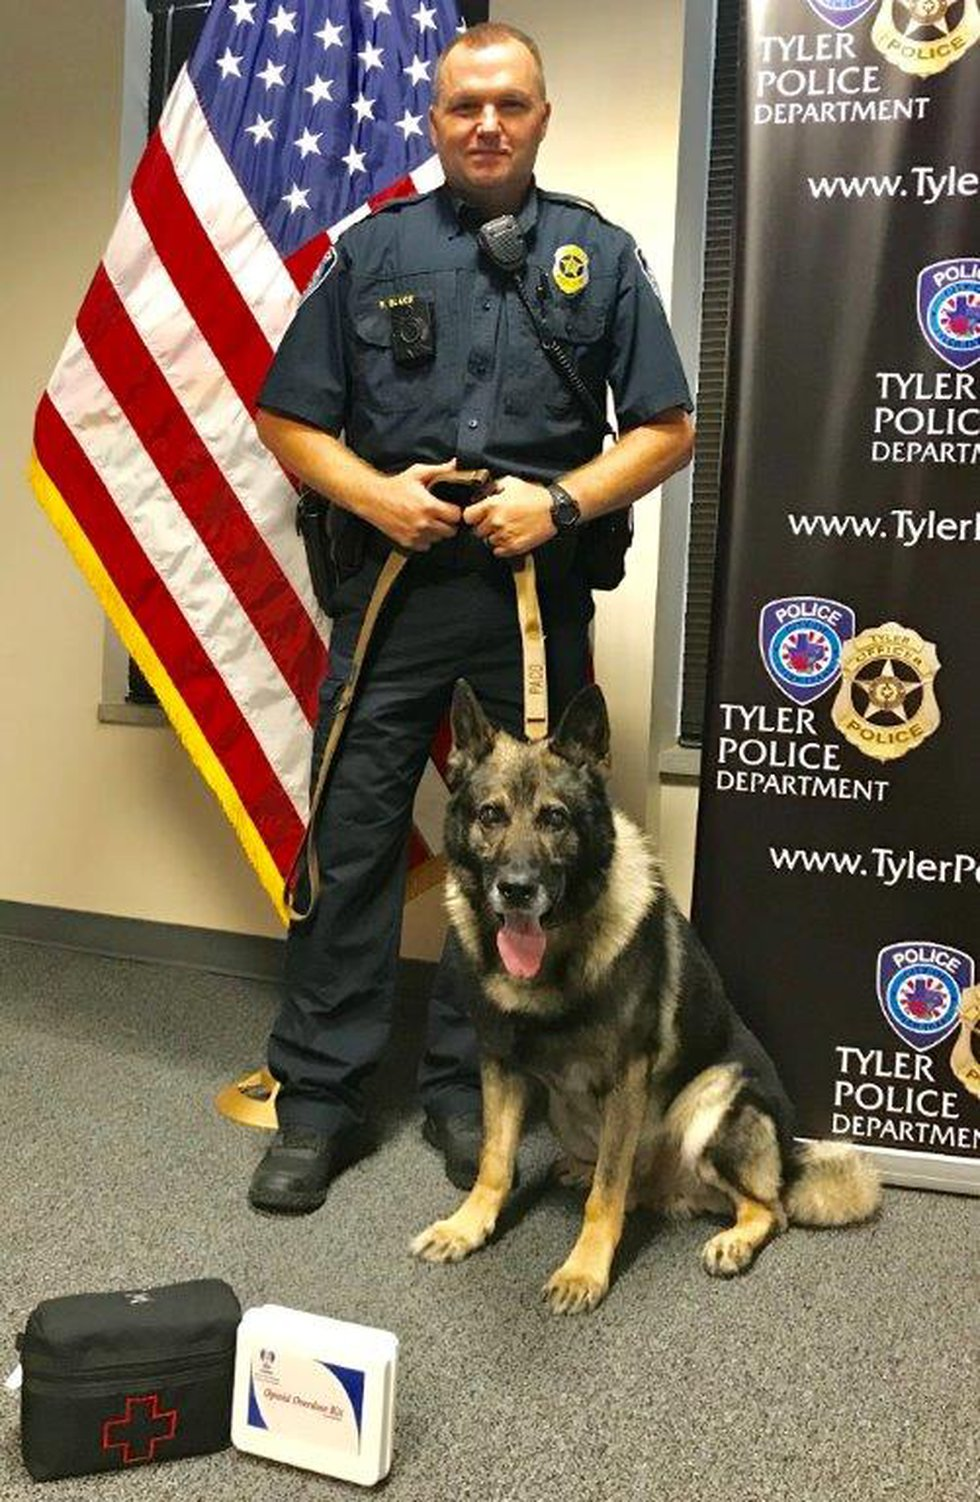 Tyler police announced the retirement of K-9 Officer Paco after 8 years of loyal service to the...